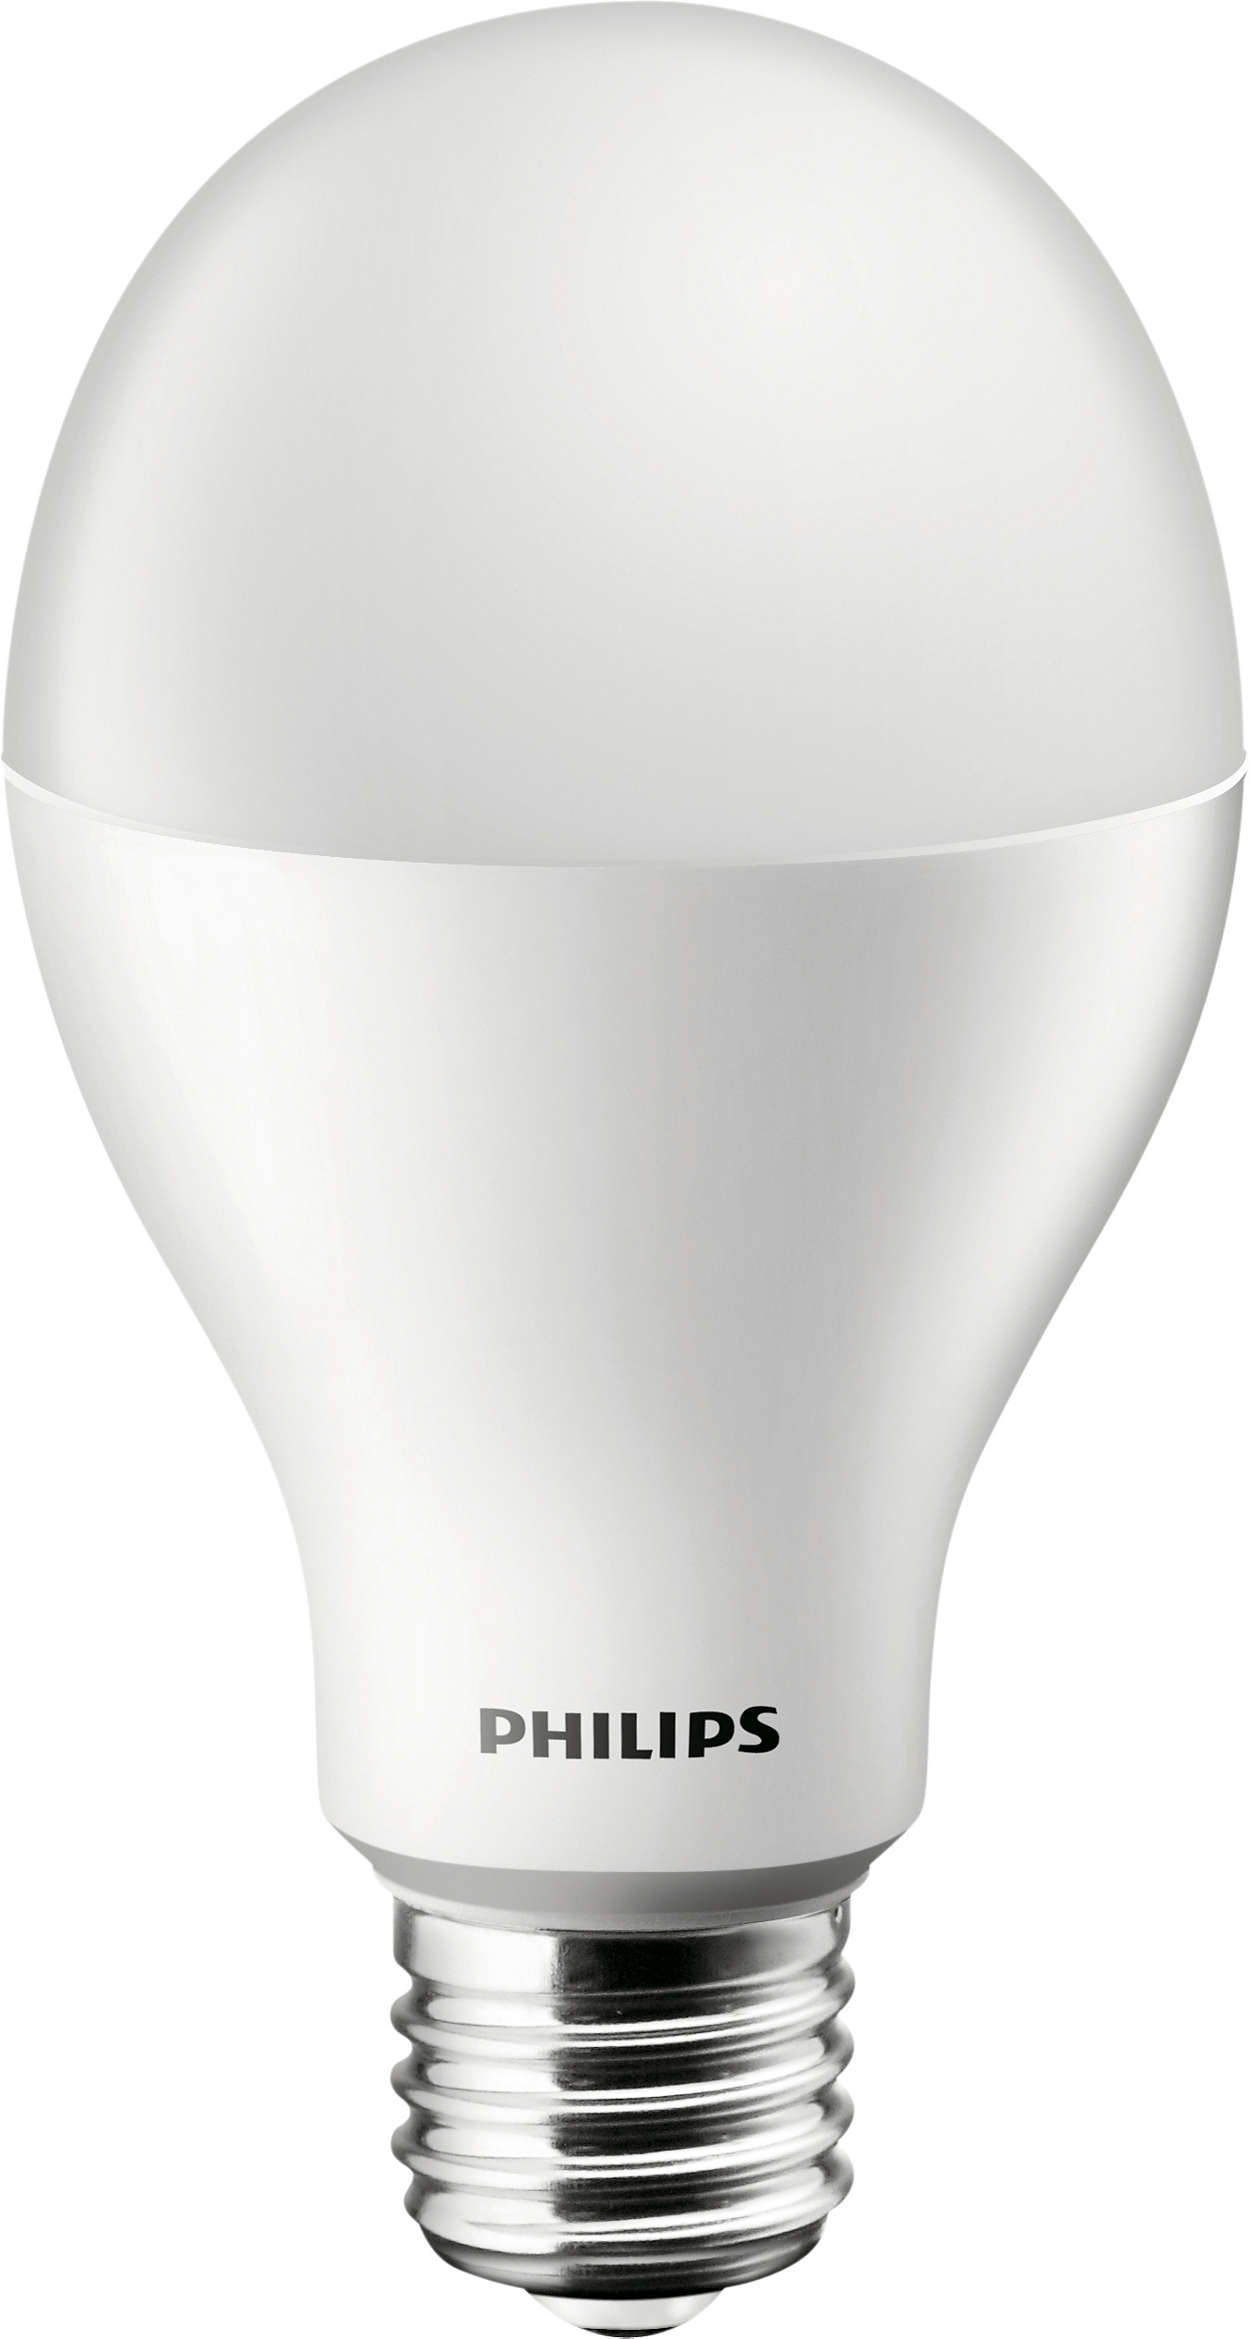 corepro ledbulb d 16 100w a67 e27 827 corepro ledbulbs. Black Bedroom Furniture Sets. Home Design Ideas